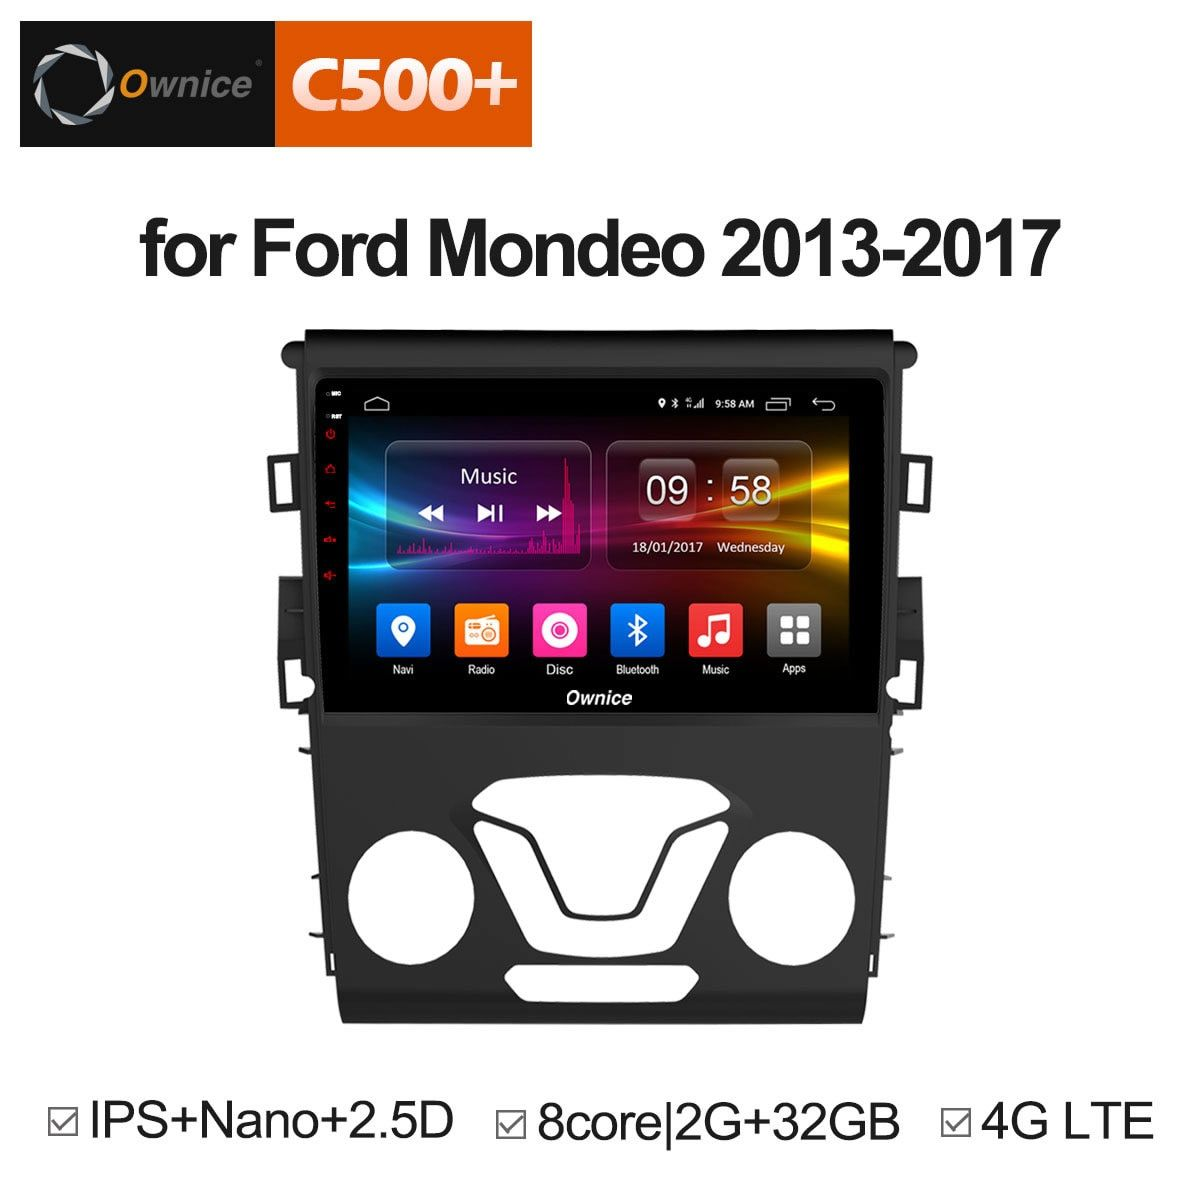 Ownice C500+ G10 Octa core Android 6.0 2GB + 32G CAR GPS DVD player FOR FORD MONDEO 2013 - 2017 car audio stereo Multimedia GPS